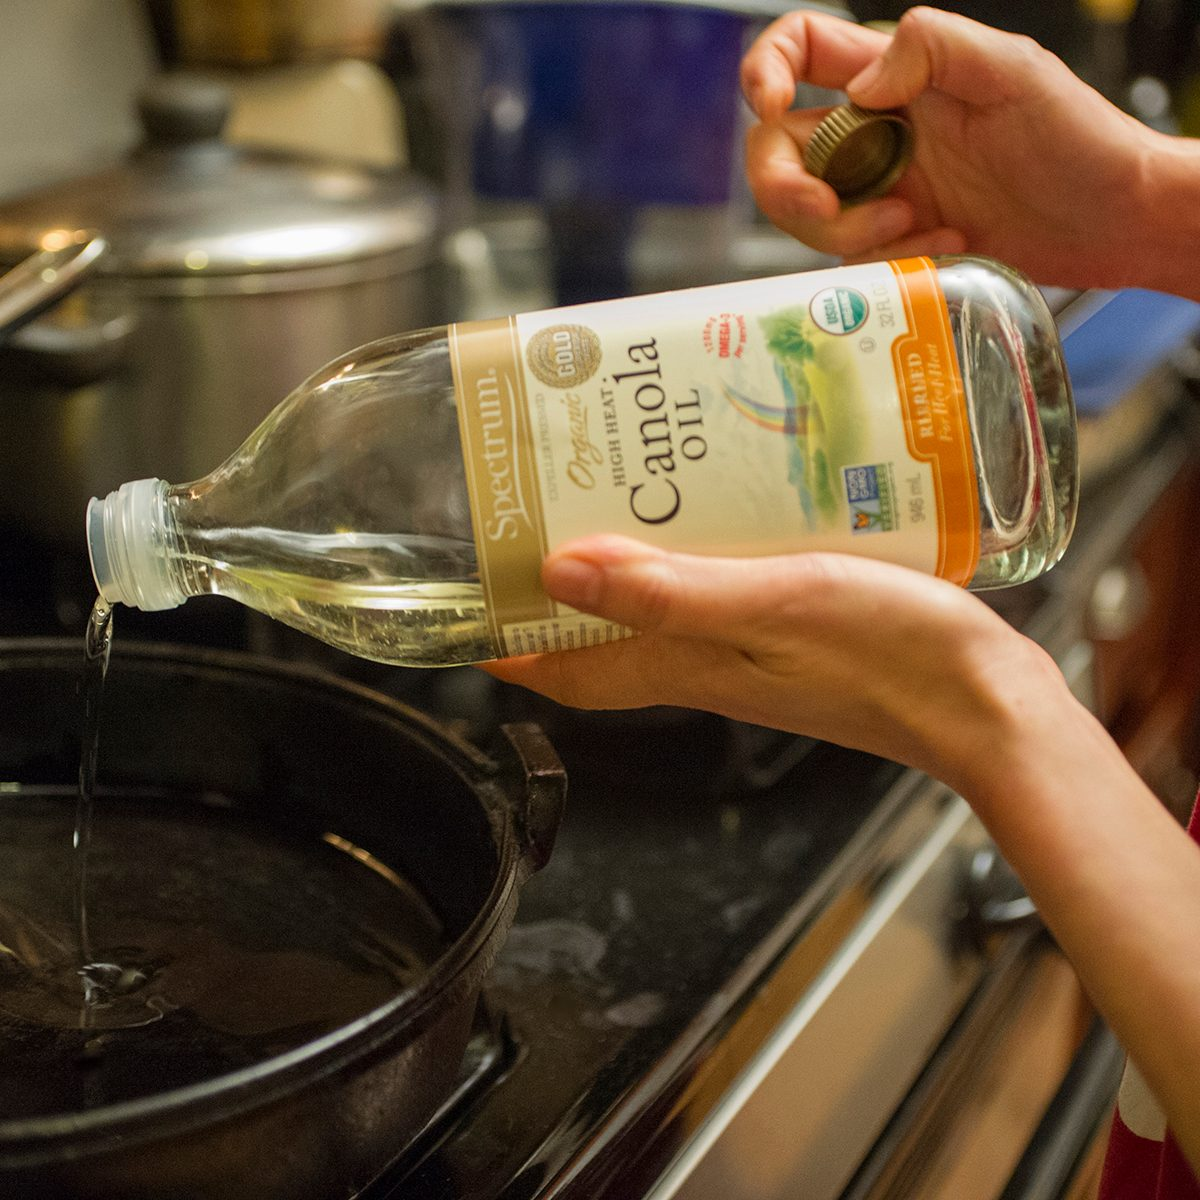 healthy oils chef cooking gluten free meal